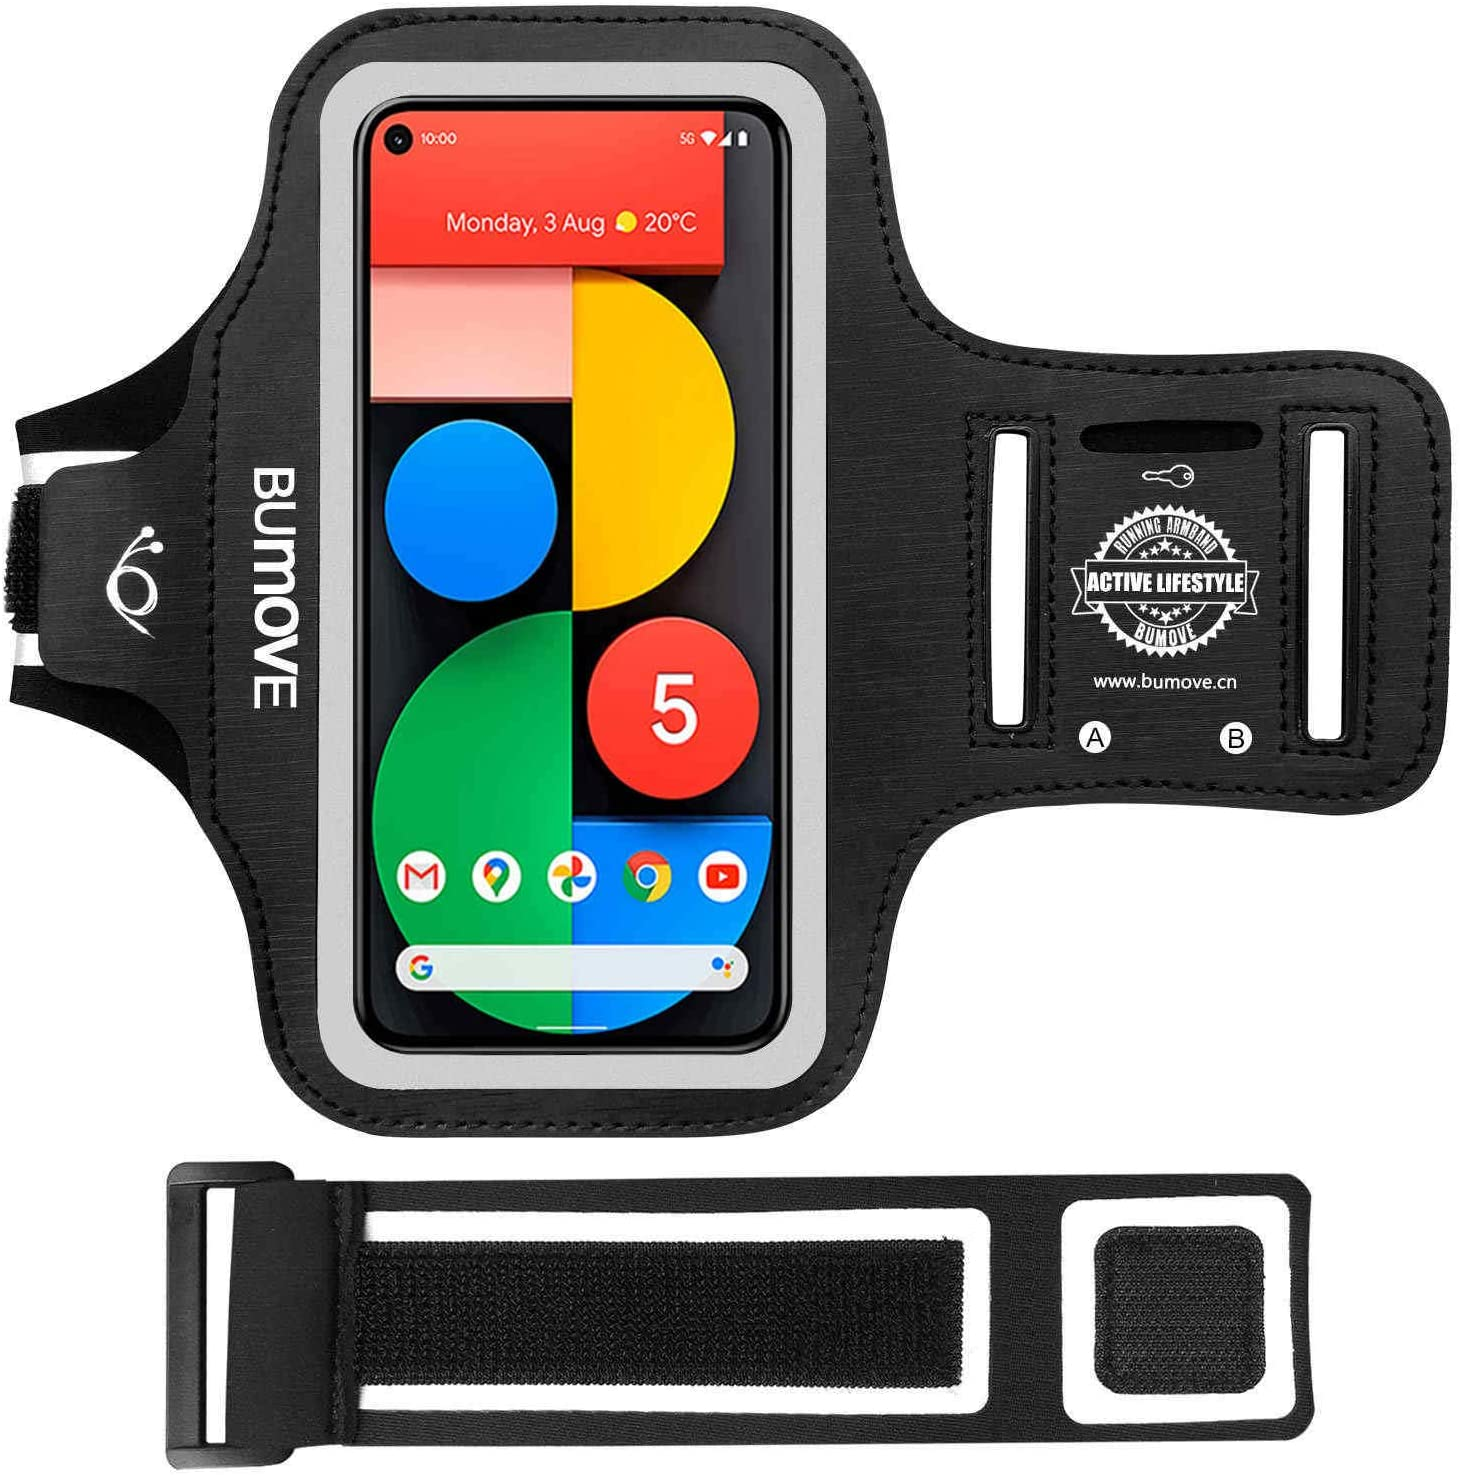 Pixel 5a/5/4a/4/3 Armband, BUMOVE Gym Running Workouts Sports Phone Arm Band for Google Pixel 5a, 5, 4a, 4, 3a, 3, 2 with Key/Card Holder (Black)